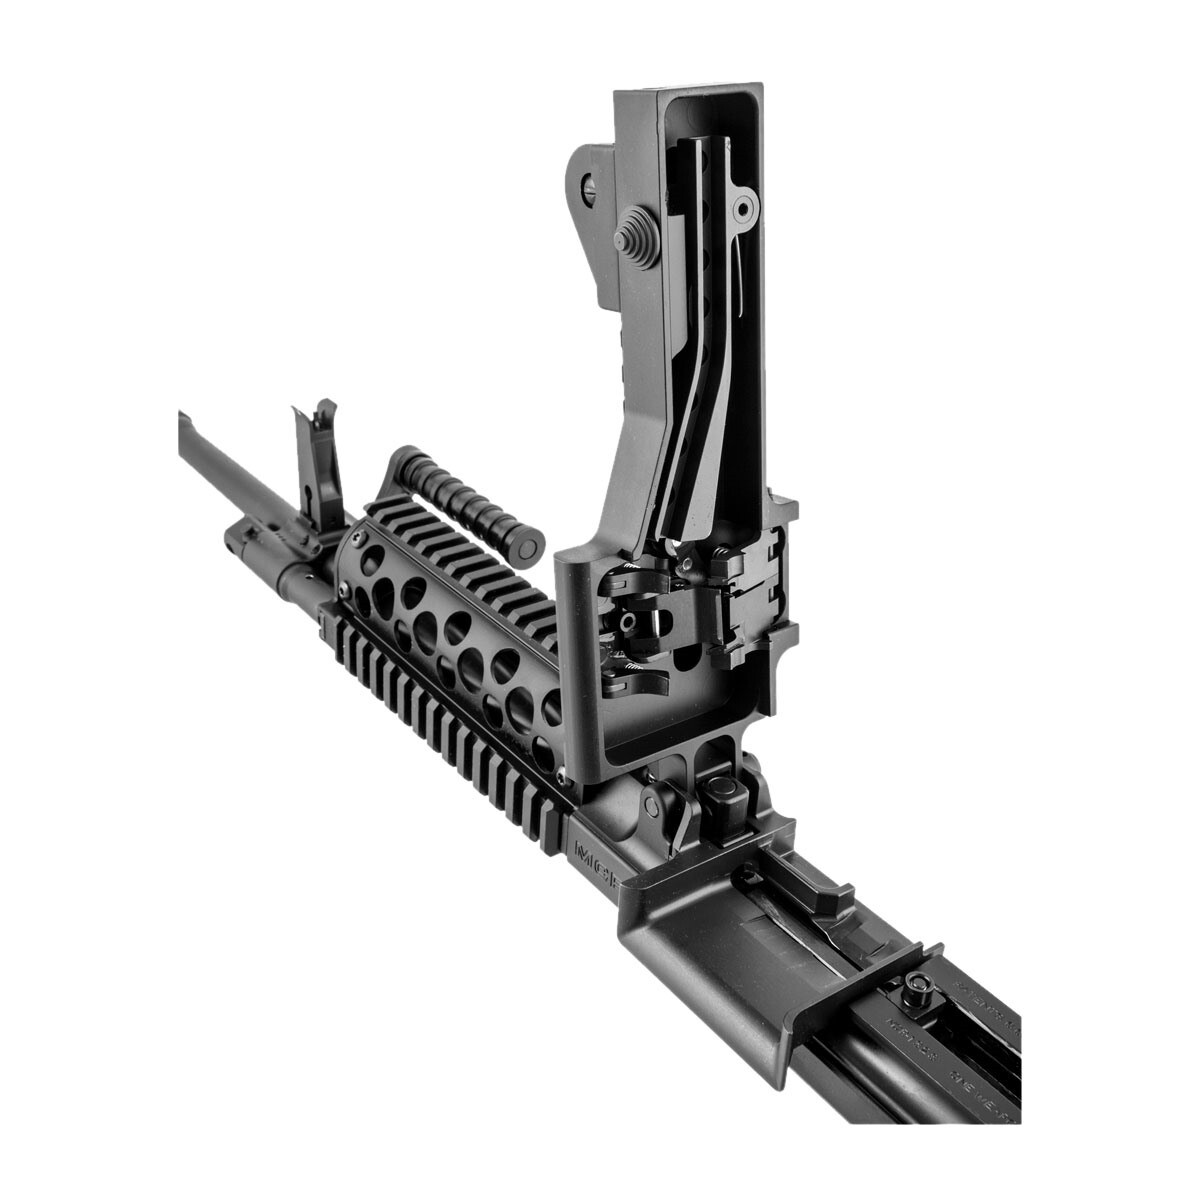 Fightlite Industries - MCR Belt-FED 5 56 Upper Receiver Full Auto